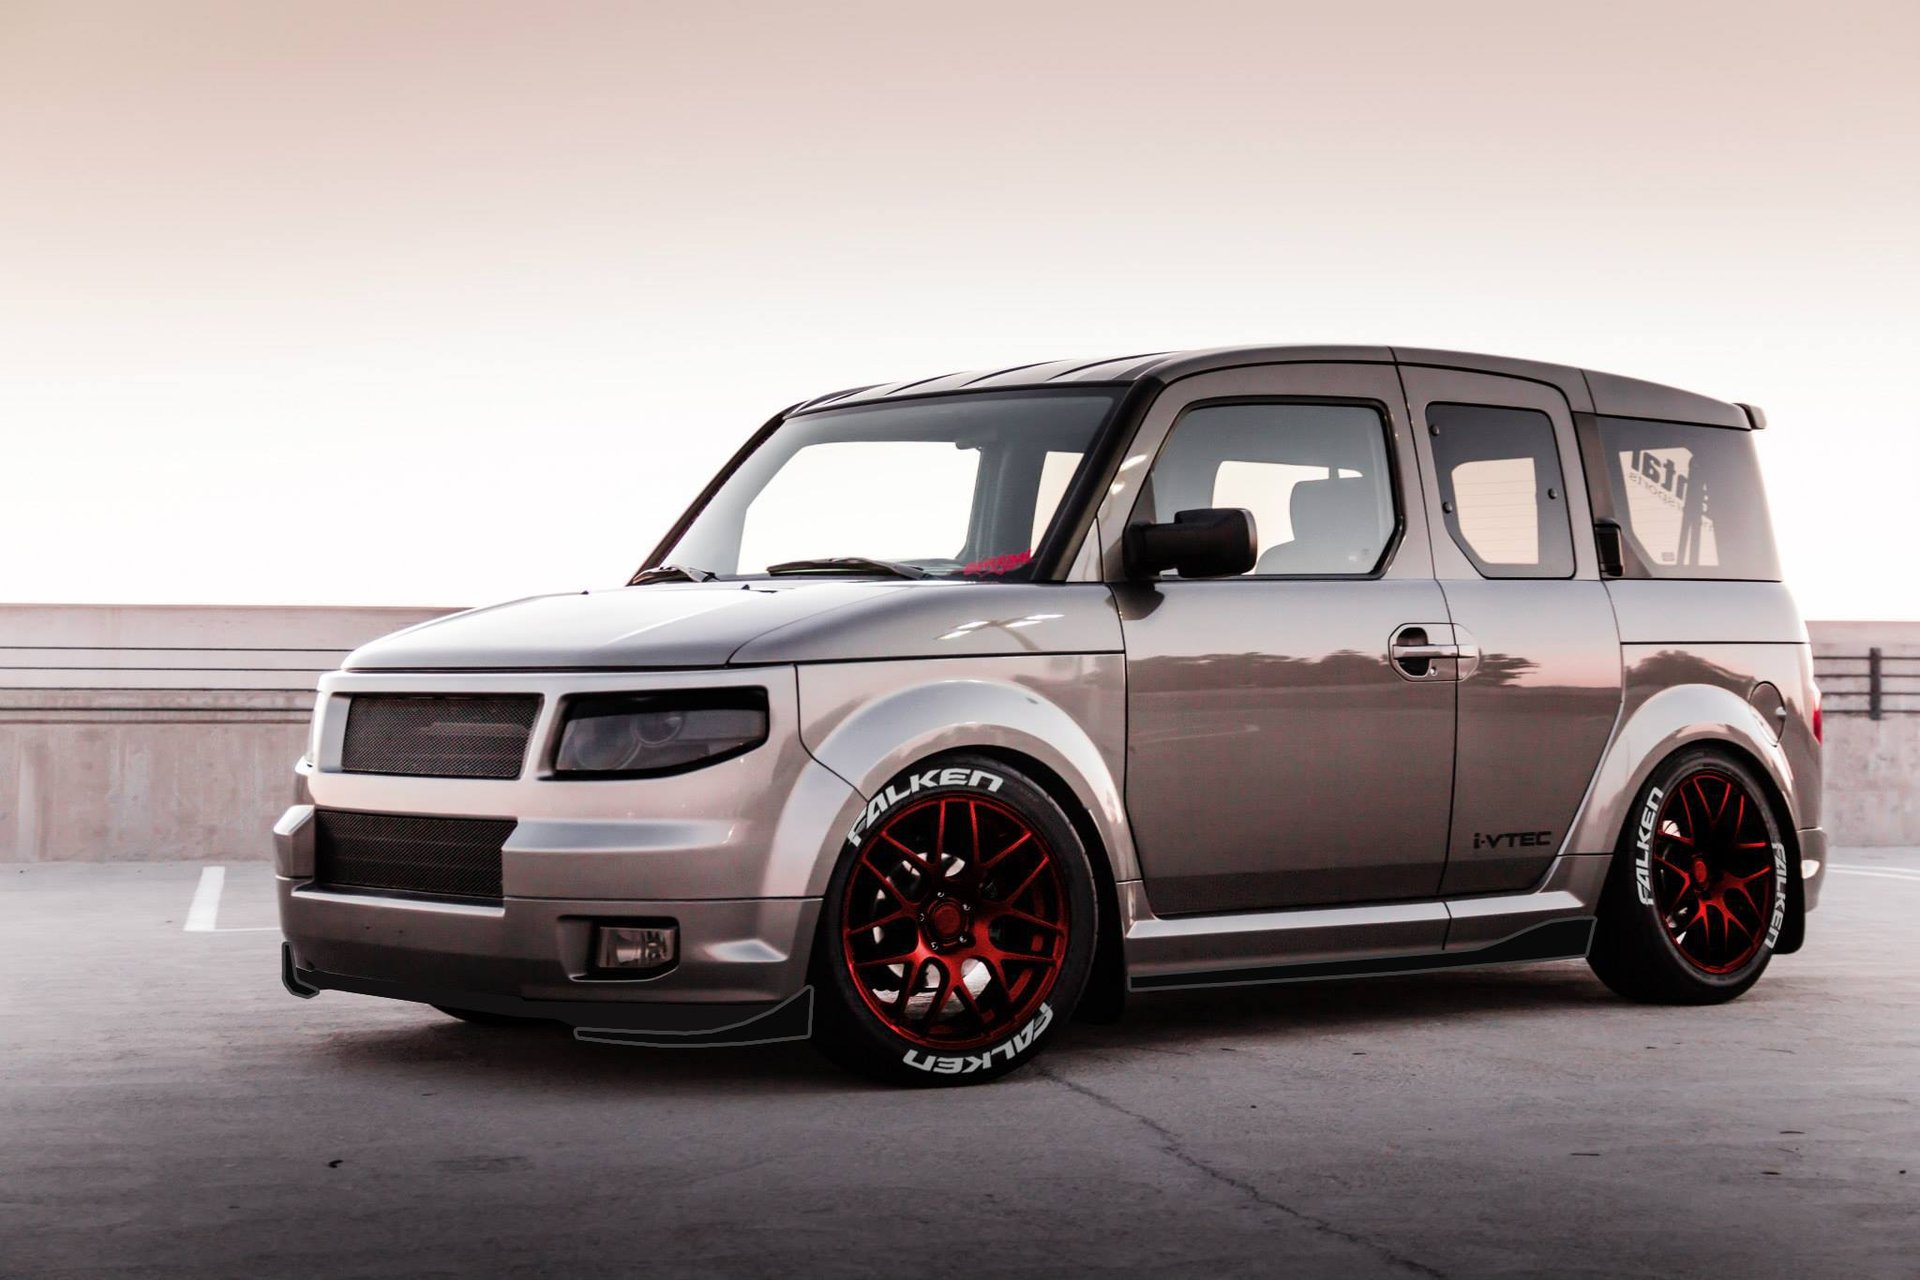 2010-2011-silver-honda-element-lowered-red-rims.jpg